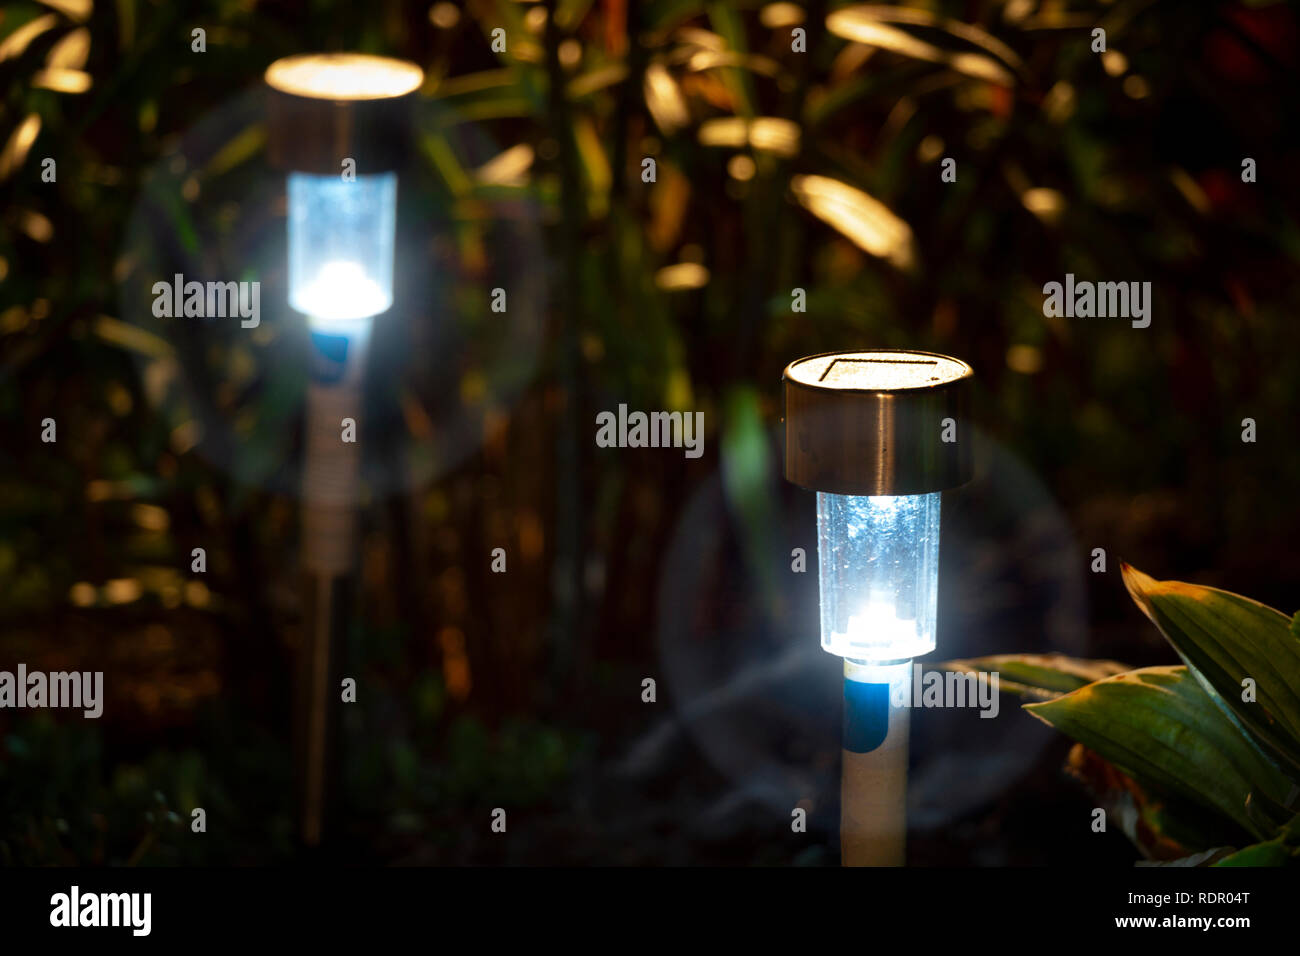 Night garden LED lights with a blue glow. - Stock Image